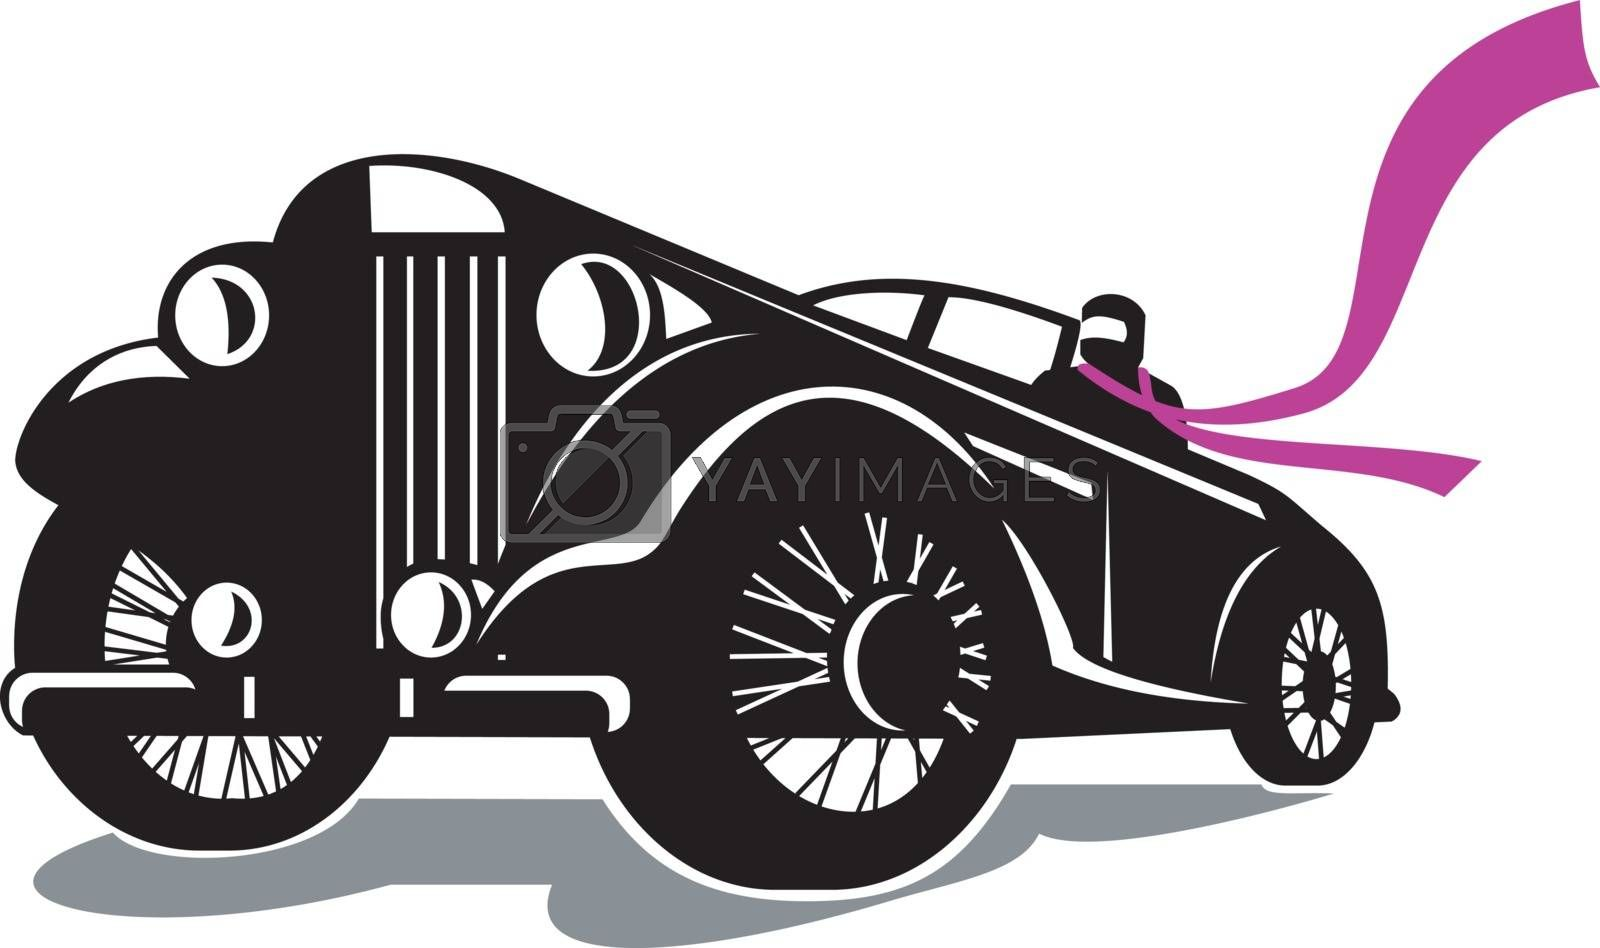 Retro style illustration of a vintage roadster, coupe classic automobile with top down and driver with flowing scarf viewed from a low angle on isolated background.